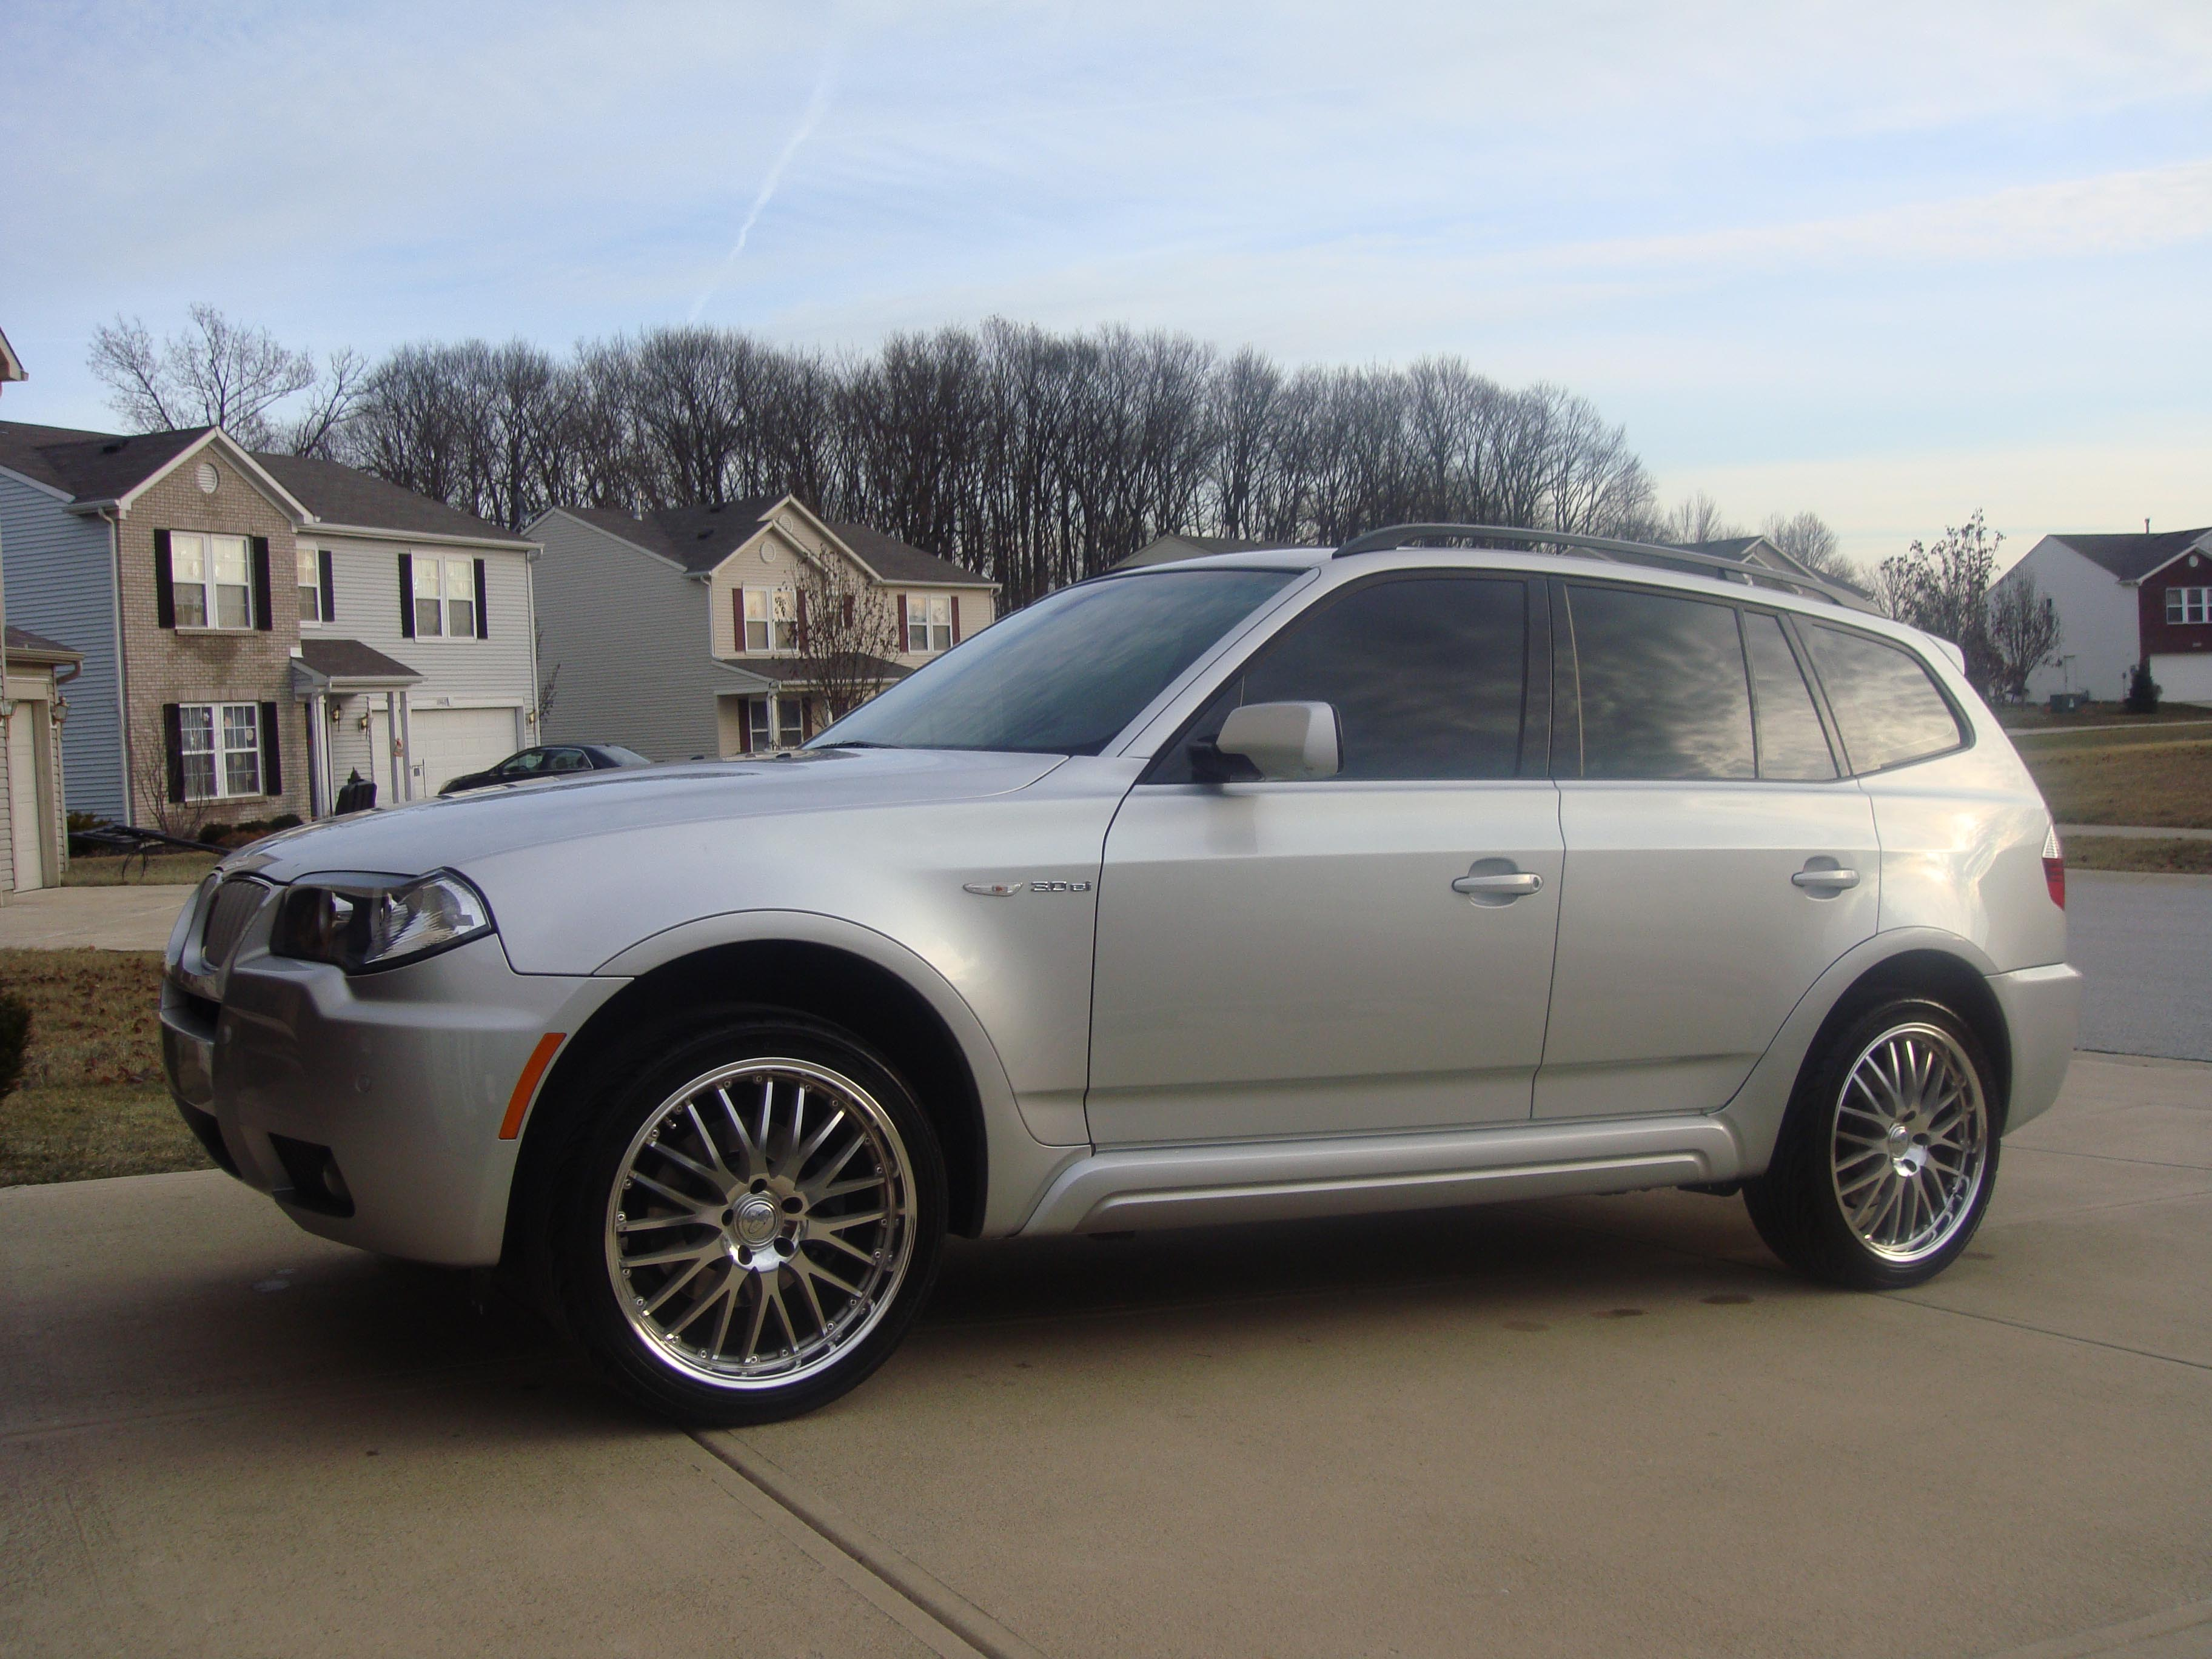 X3 Wheel Choices 18 S 19 S Or 20 S Bmw Forum